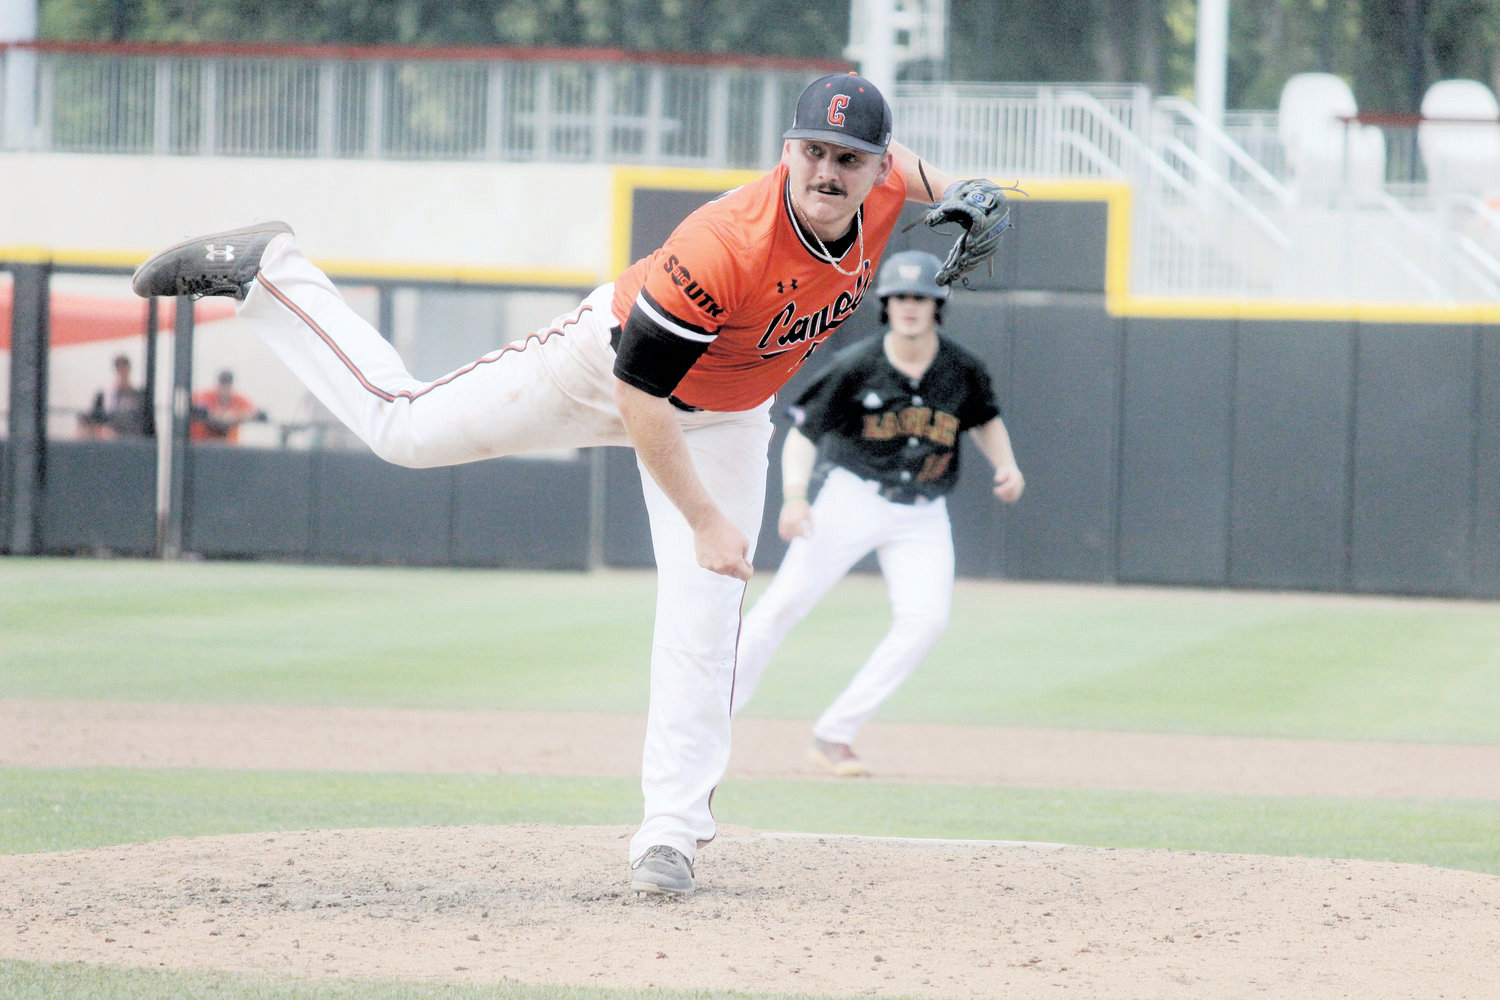 Tyson Messer was selected in the ninth round by the Chicago White Sox. The Harnett Central alumnus finished his Campbell career tied for fourth all time in saves (14).